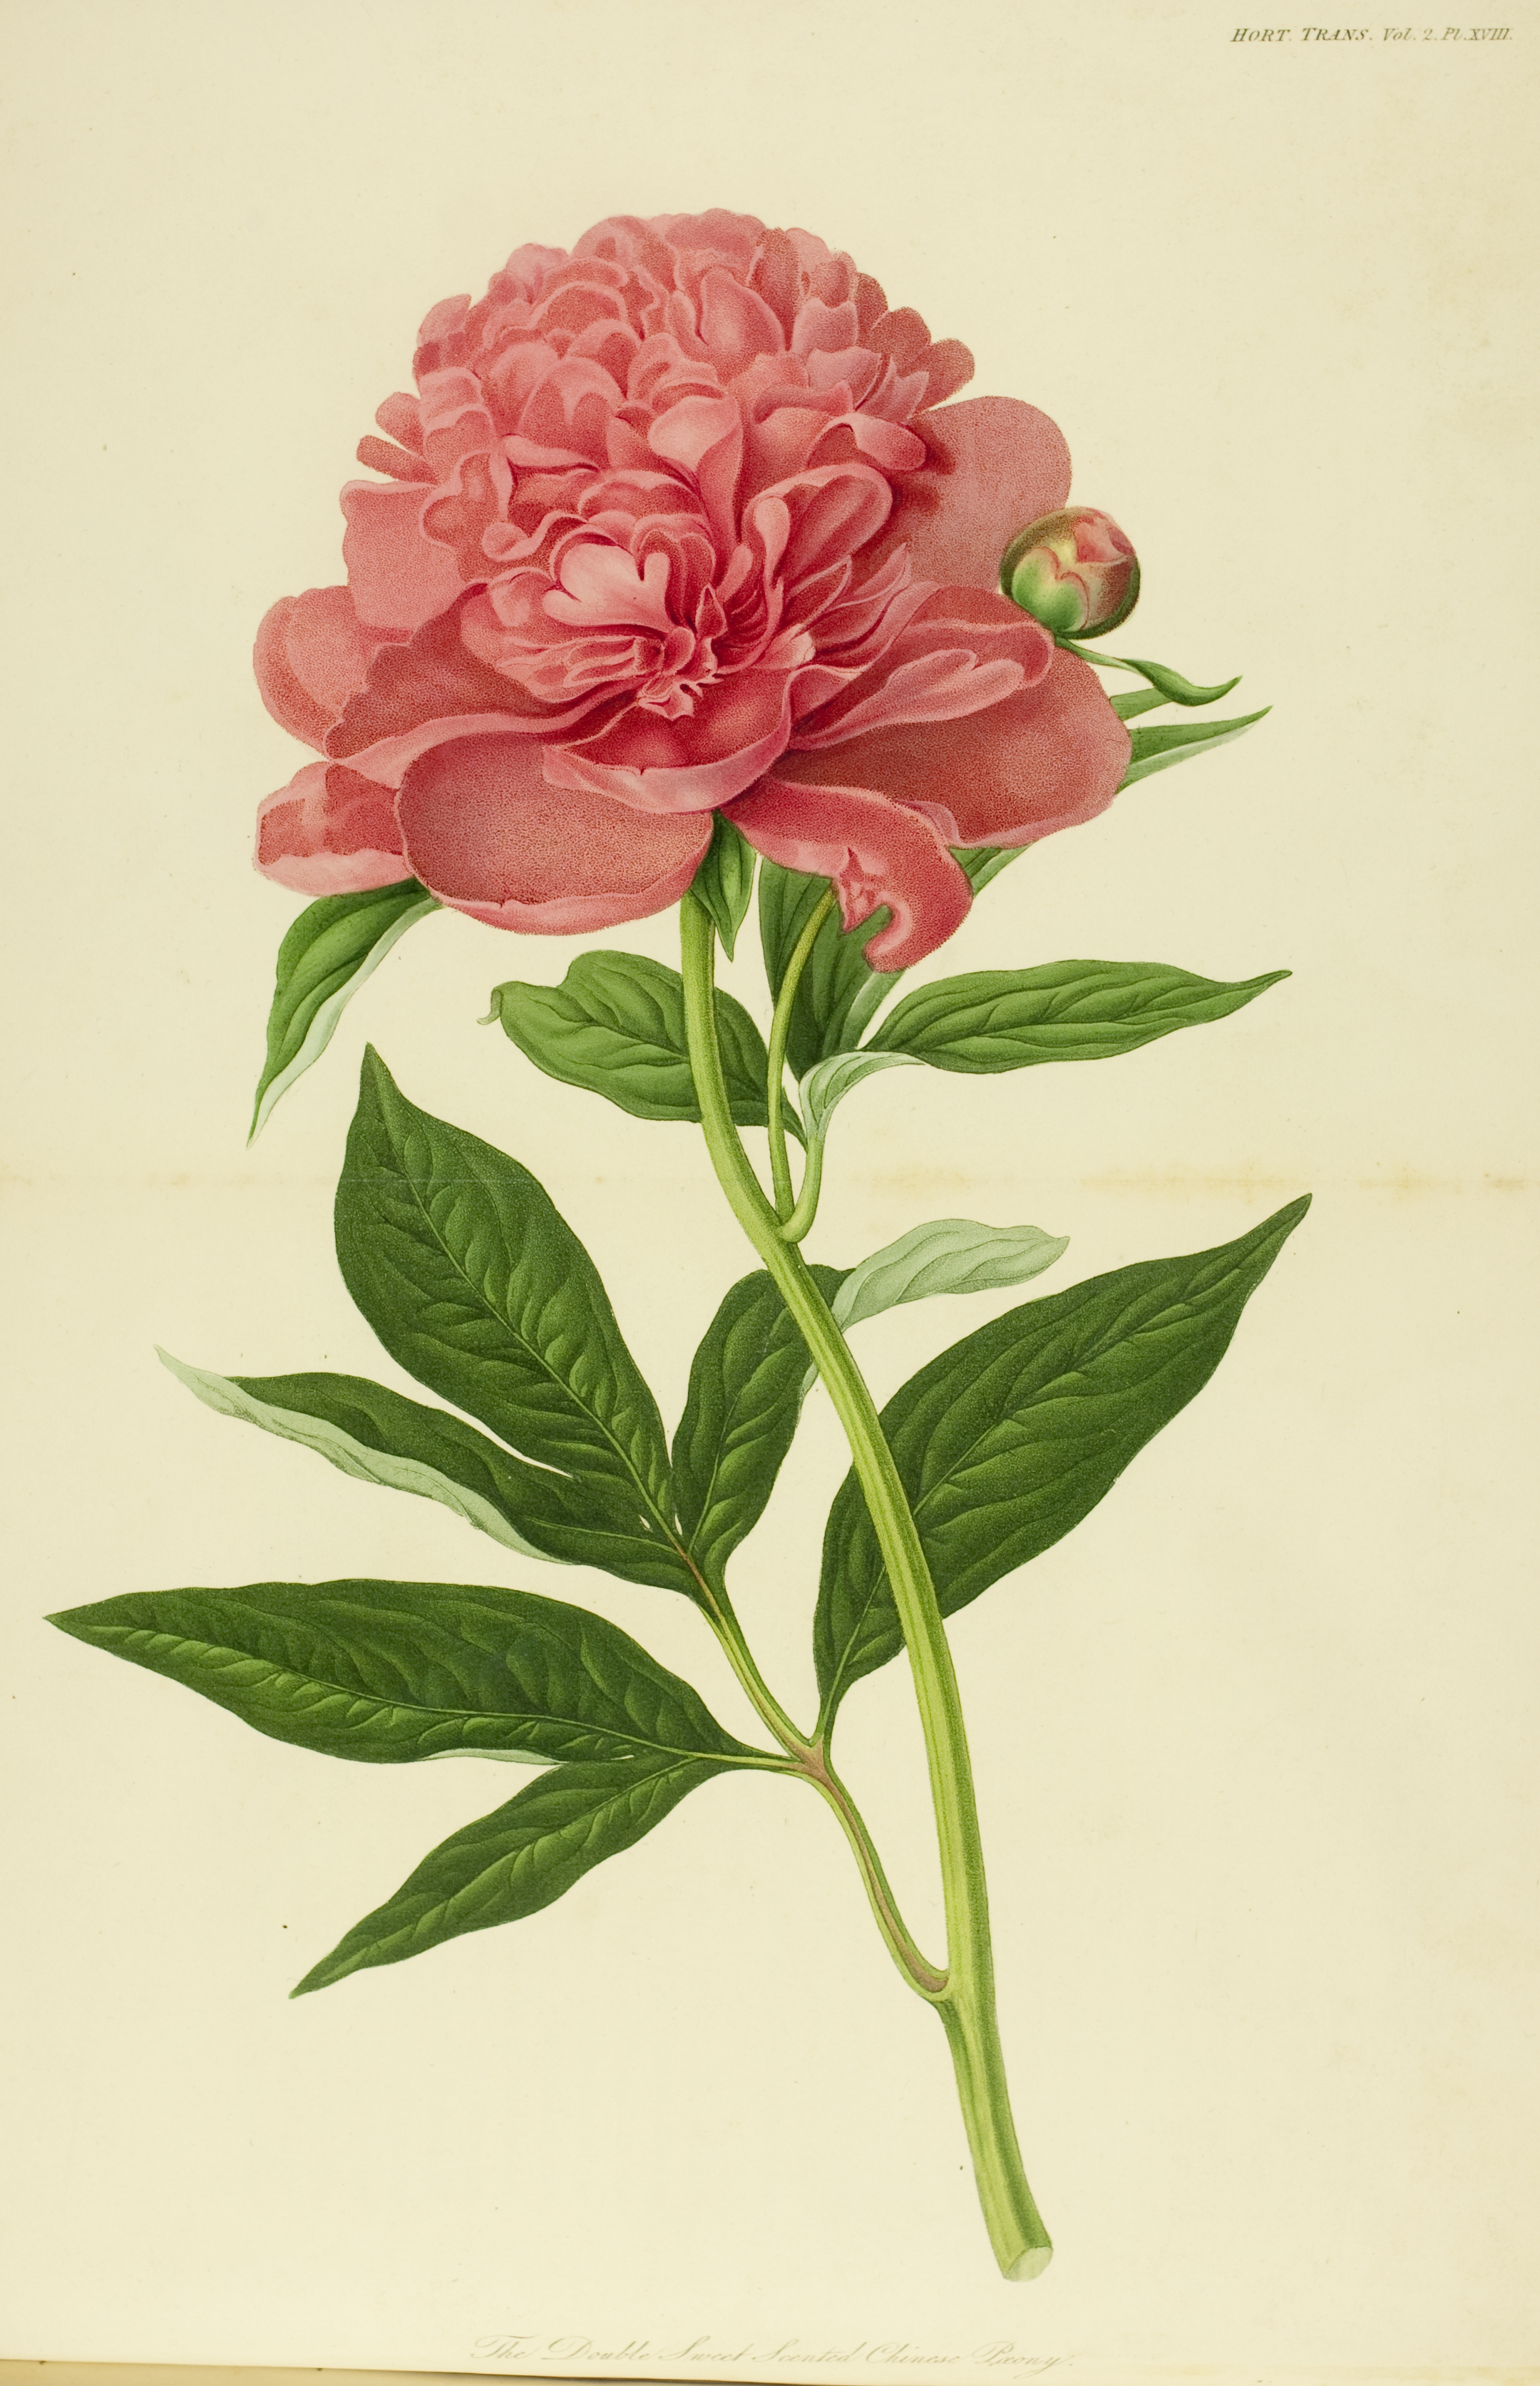 Drawn peony old fashioned flower Sweet Cary DrawingsPink Peony Double